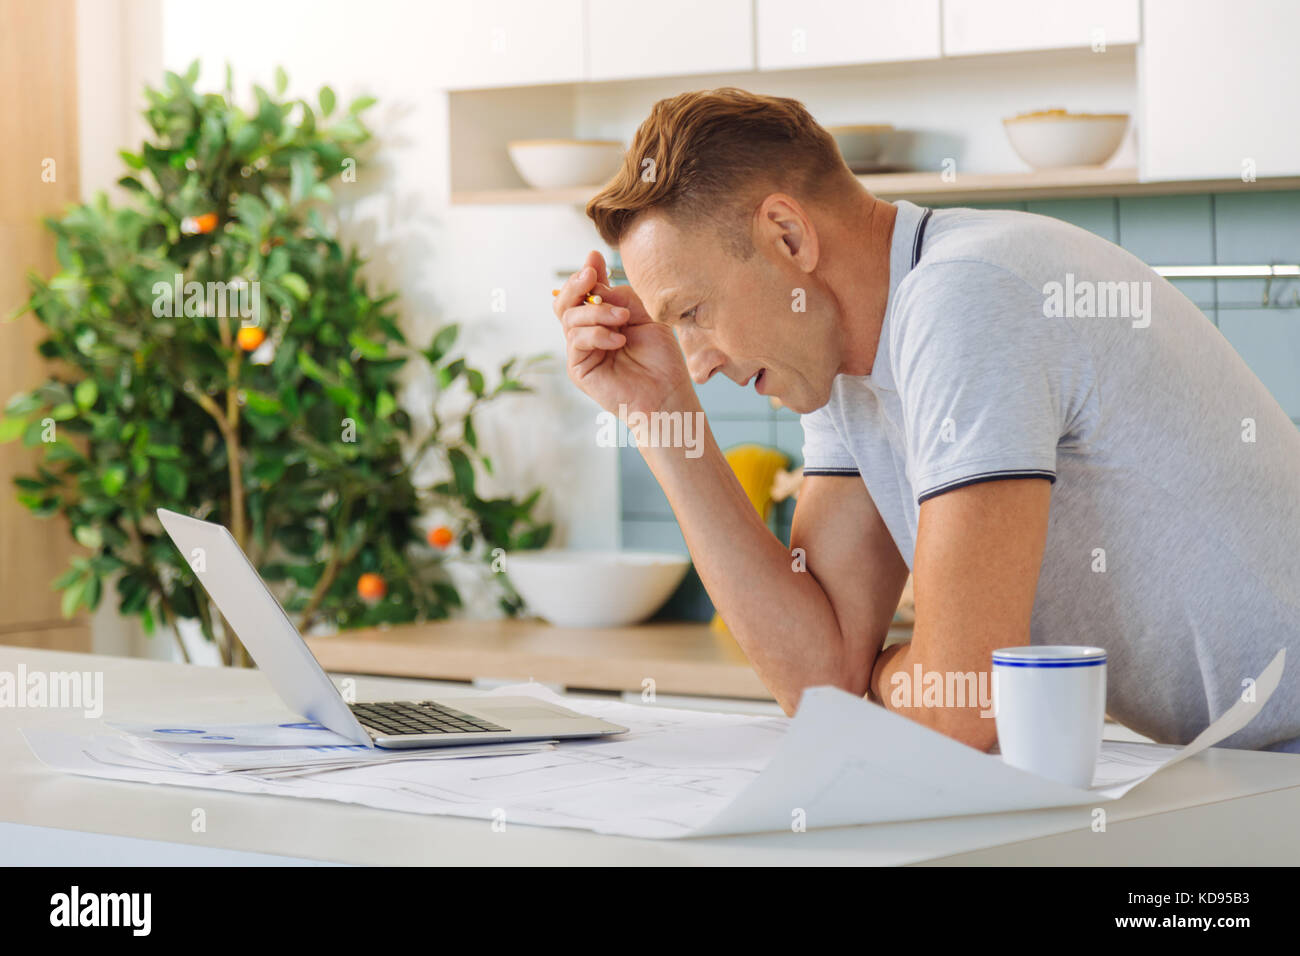 Unhappy sad man working at home - Stock Image